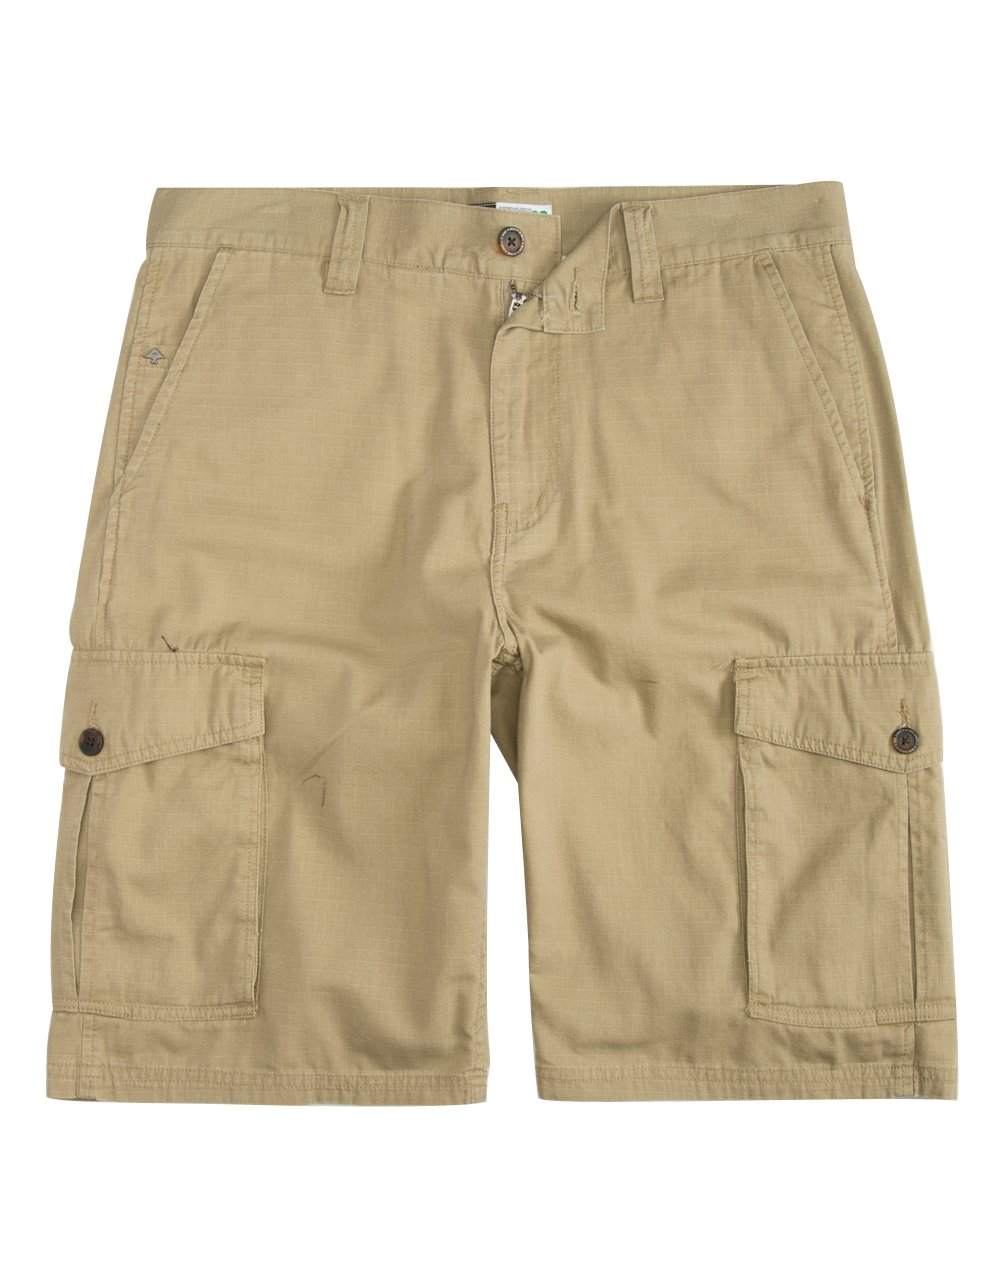 LRG Mens Research Collection Ripstopcargoshort J176002